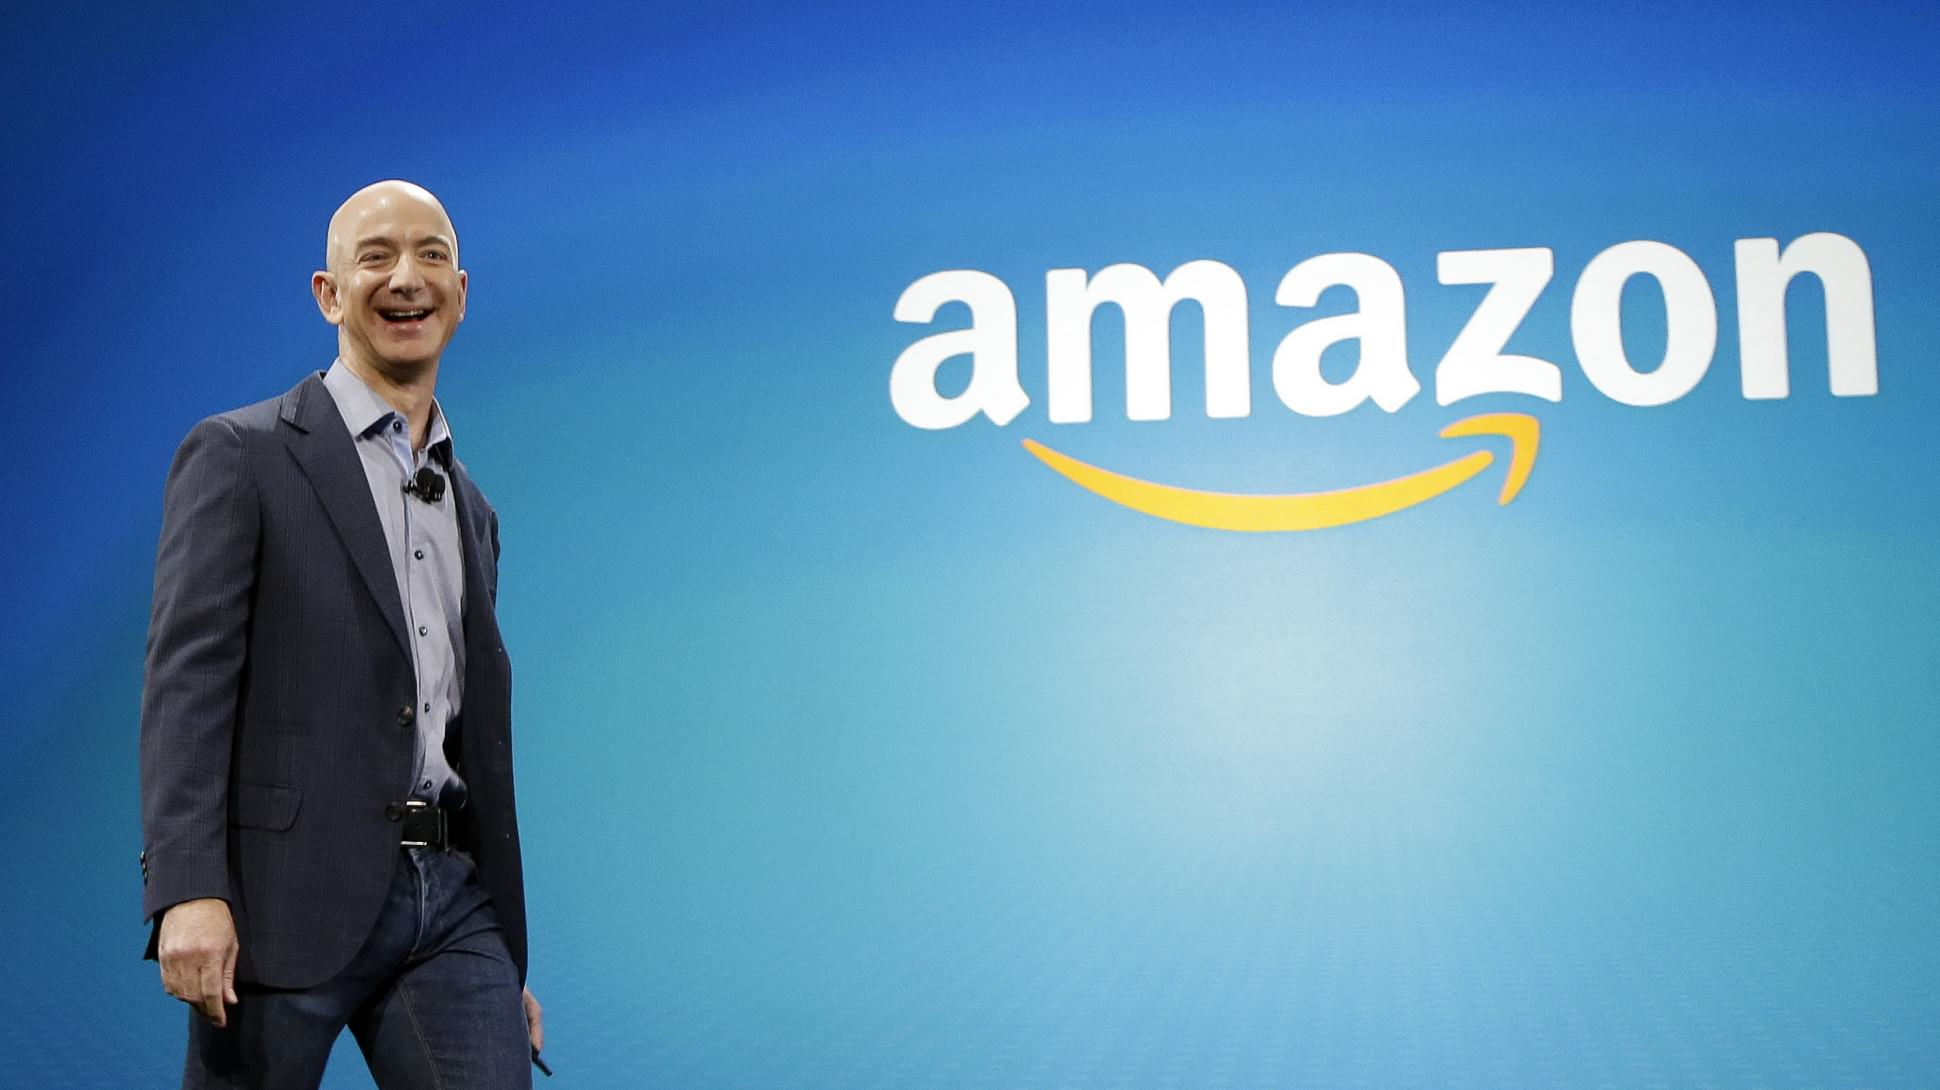 Amazon Boss Admits Clarkson And Co Were Very Expensive UNILAD clarkson amazon 36